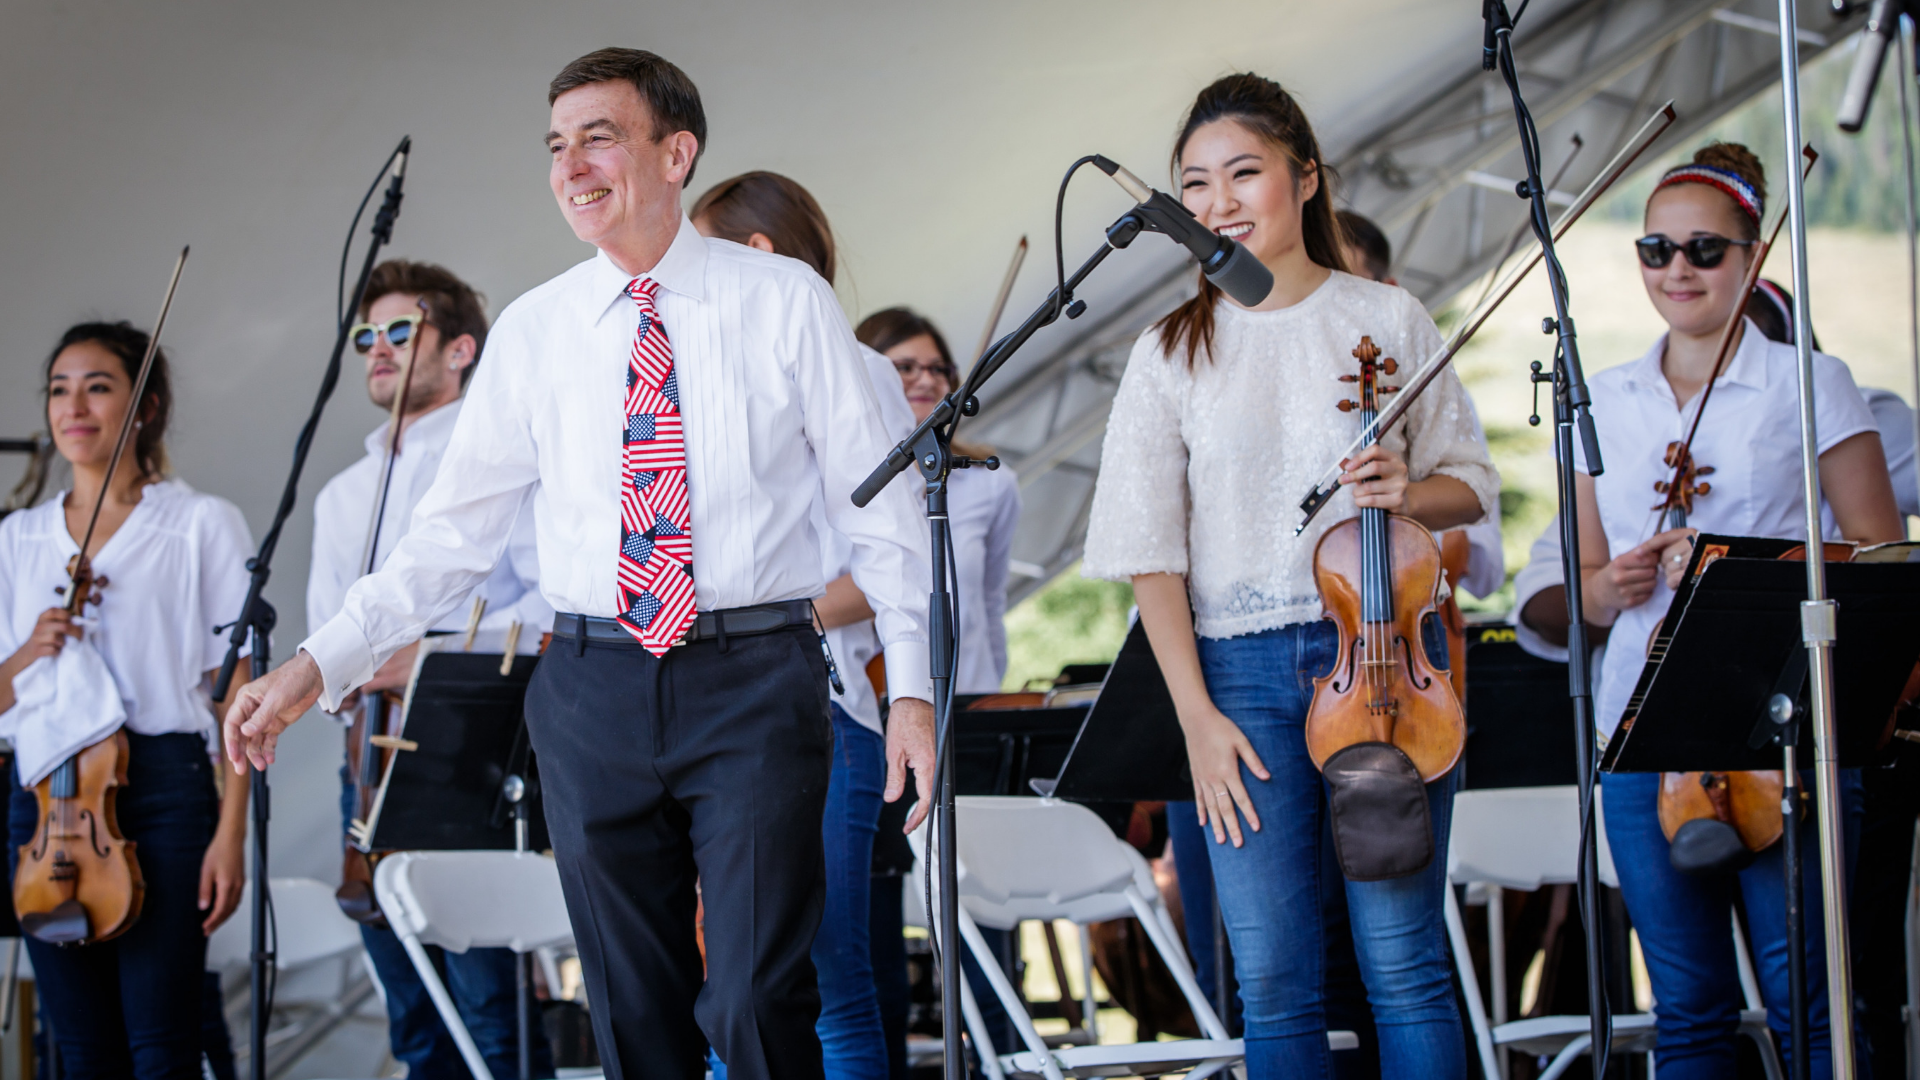 Carl Topilow with students from National Repertory Orchestra.